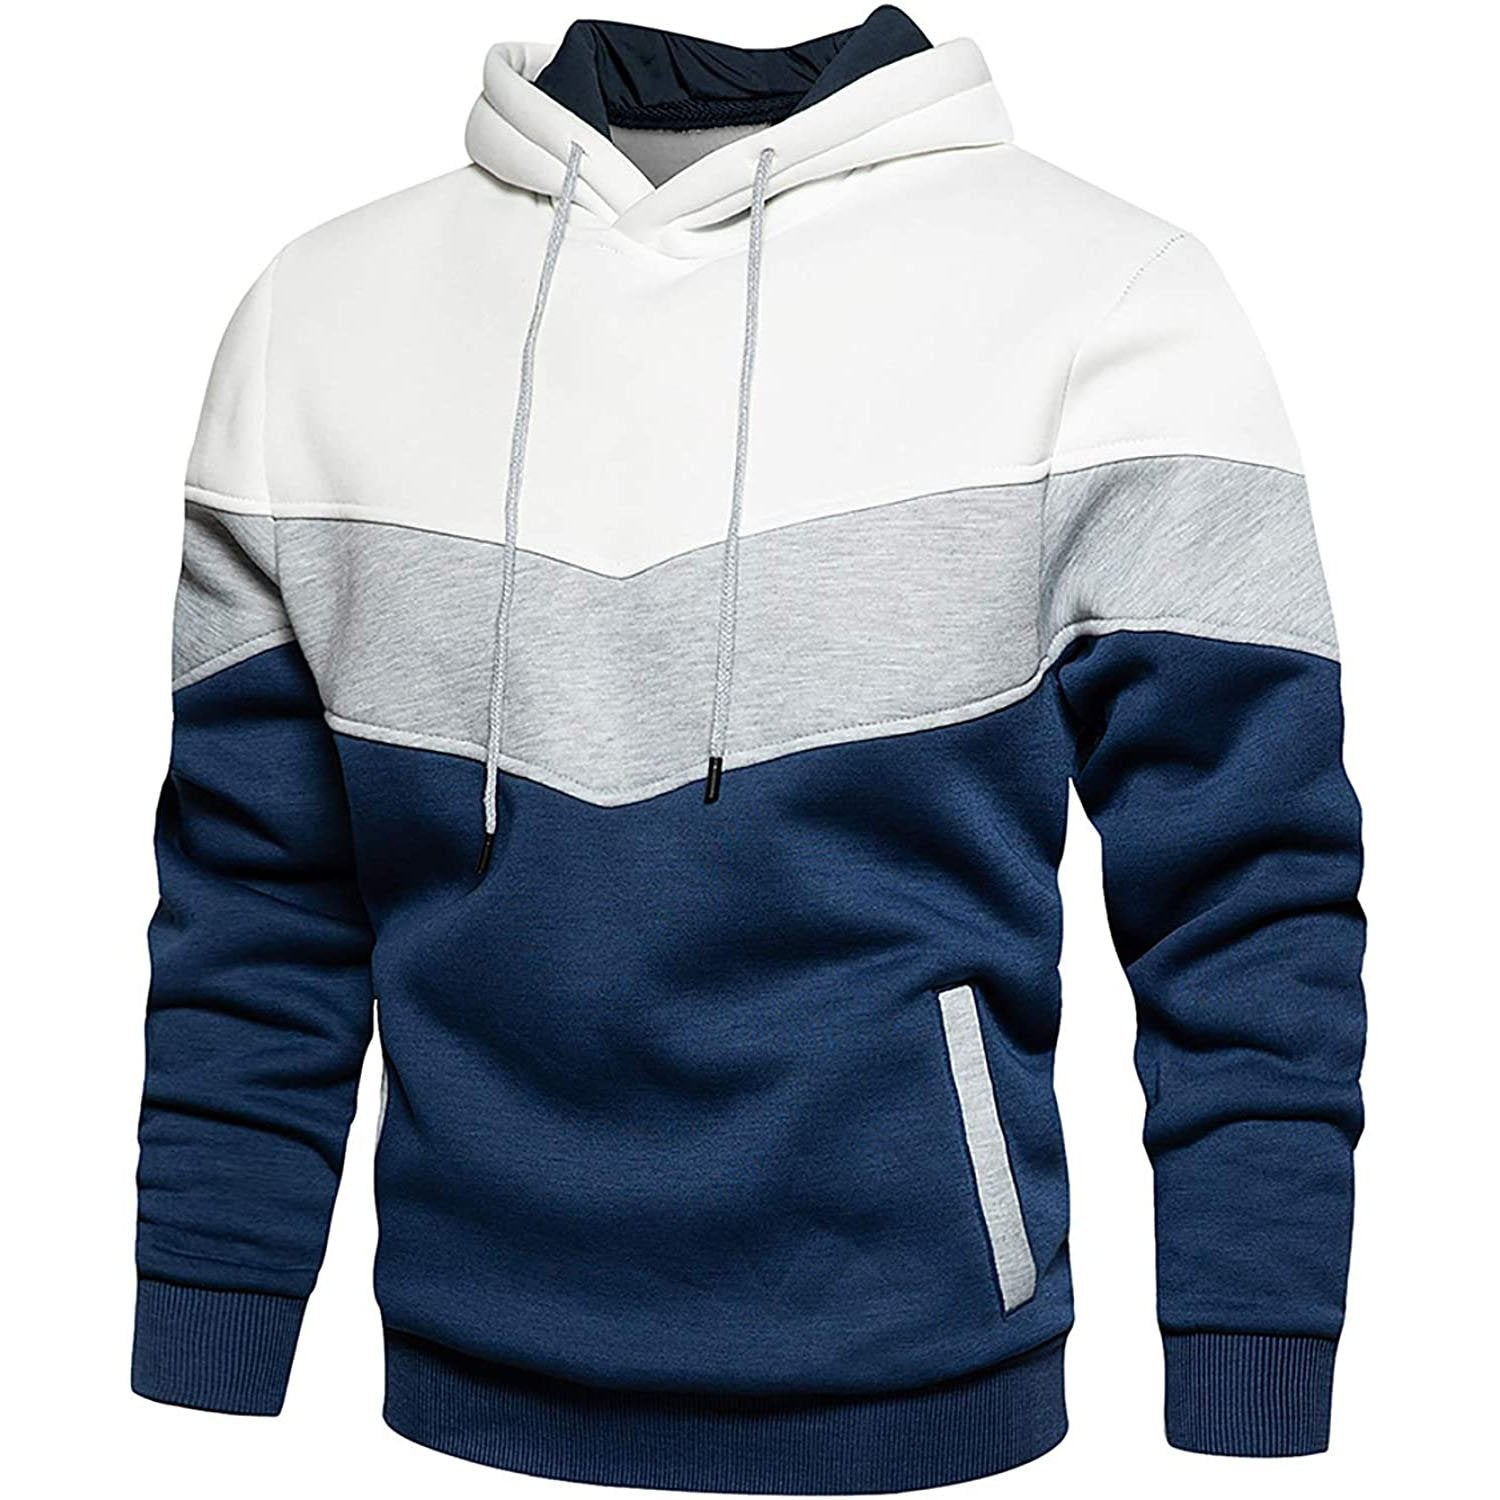 Multi Color Pullover Hoodie - White/Grey/Blue